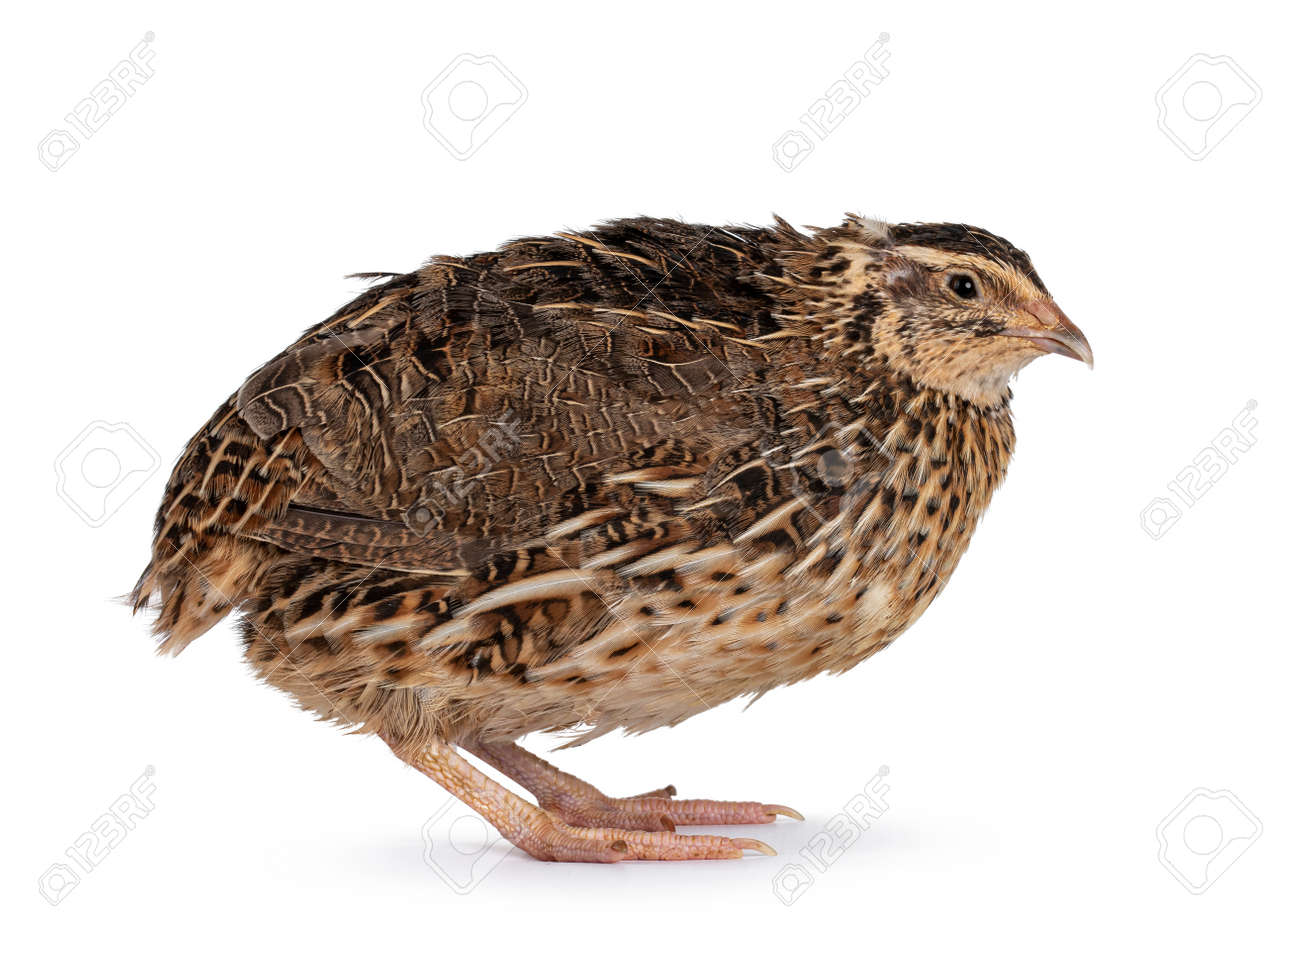 Roux brown Quail bird, standing side ways. Looking away from camera. isolated on a white background. - 173044499